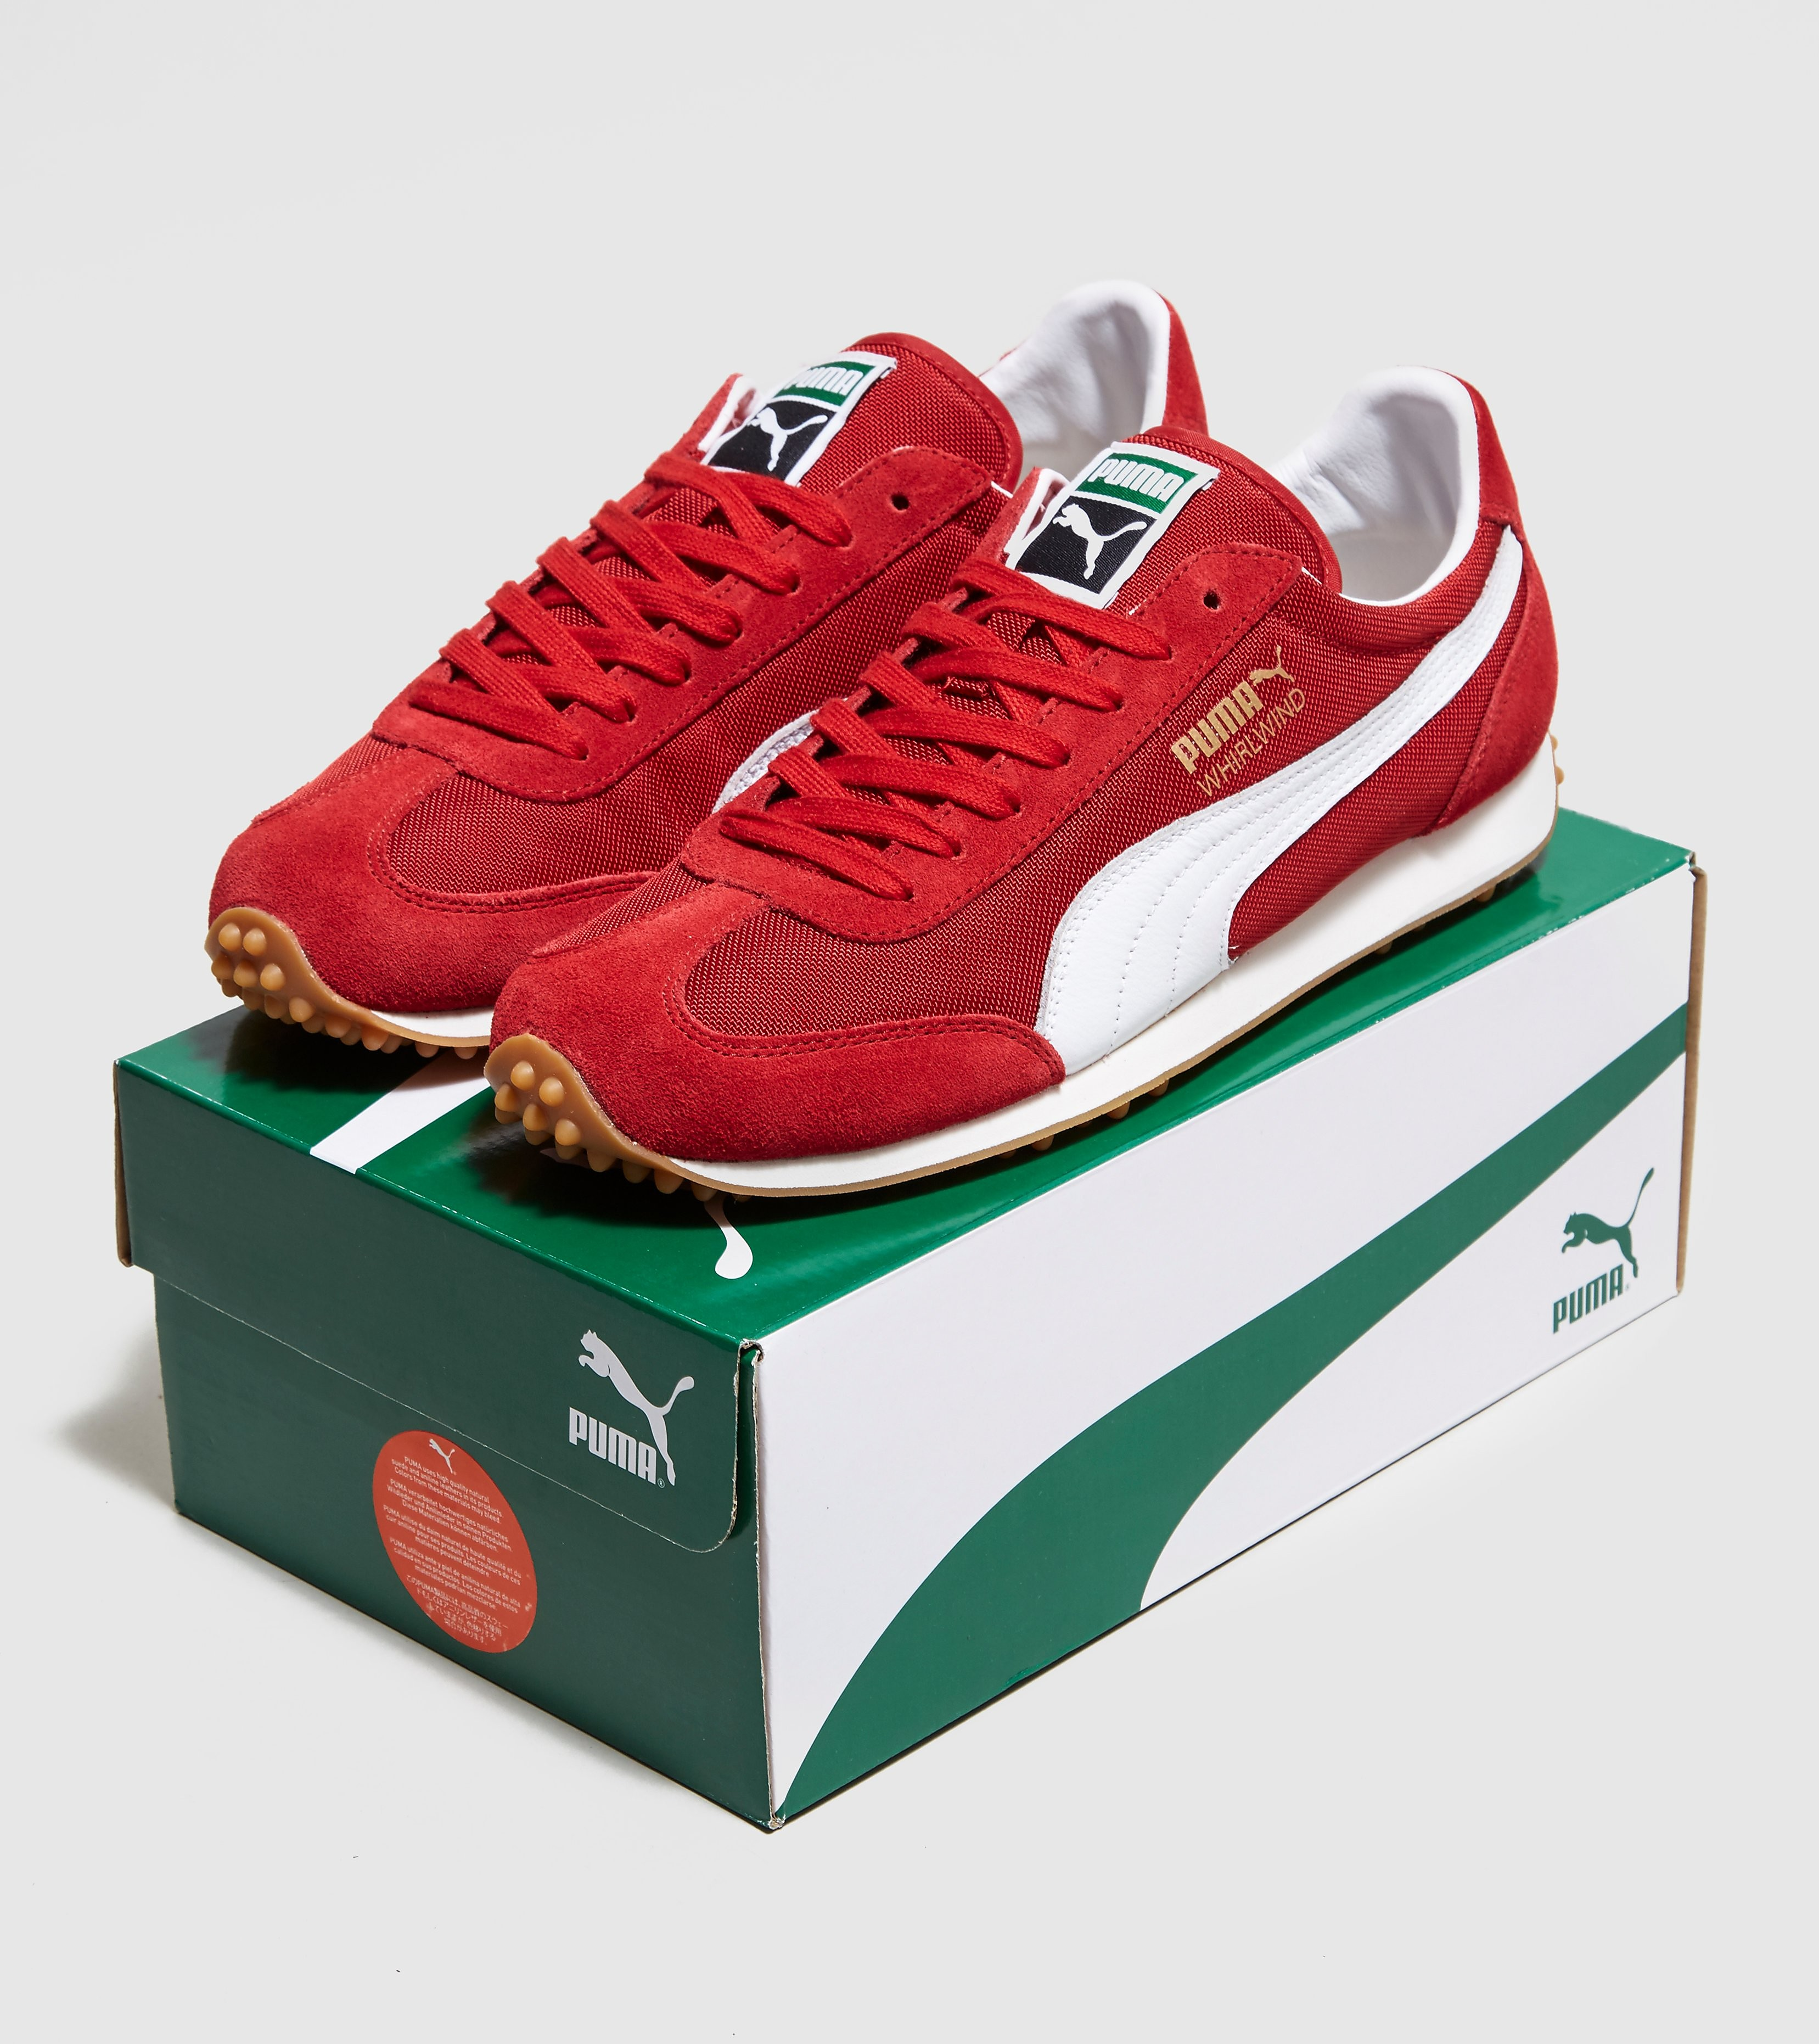 PUMA Whirlwind - size? Exclusive